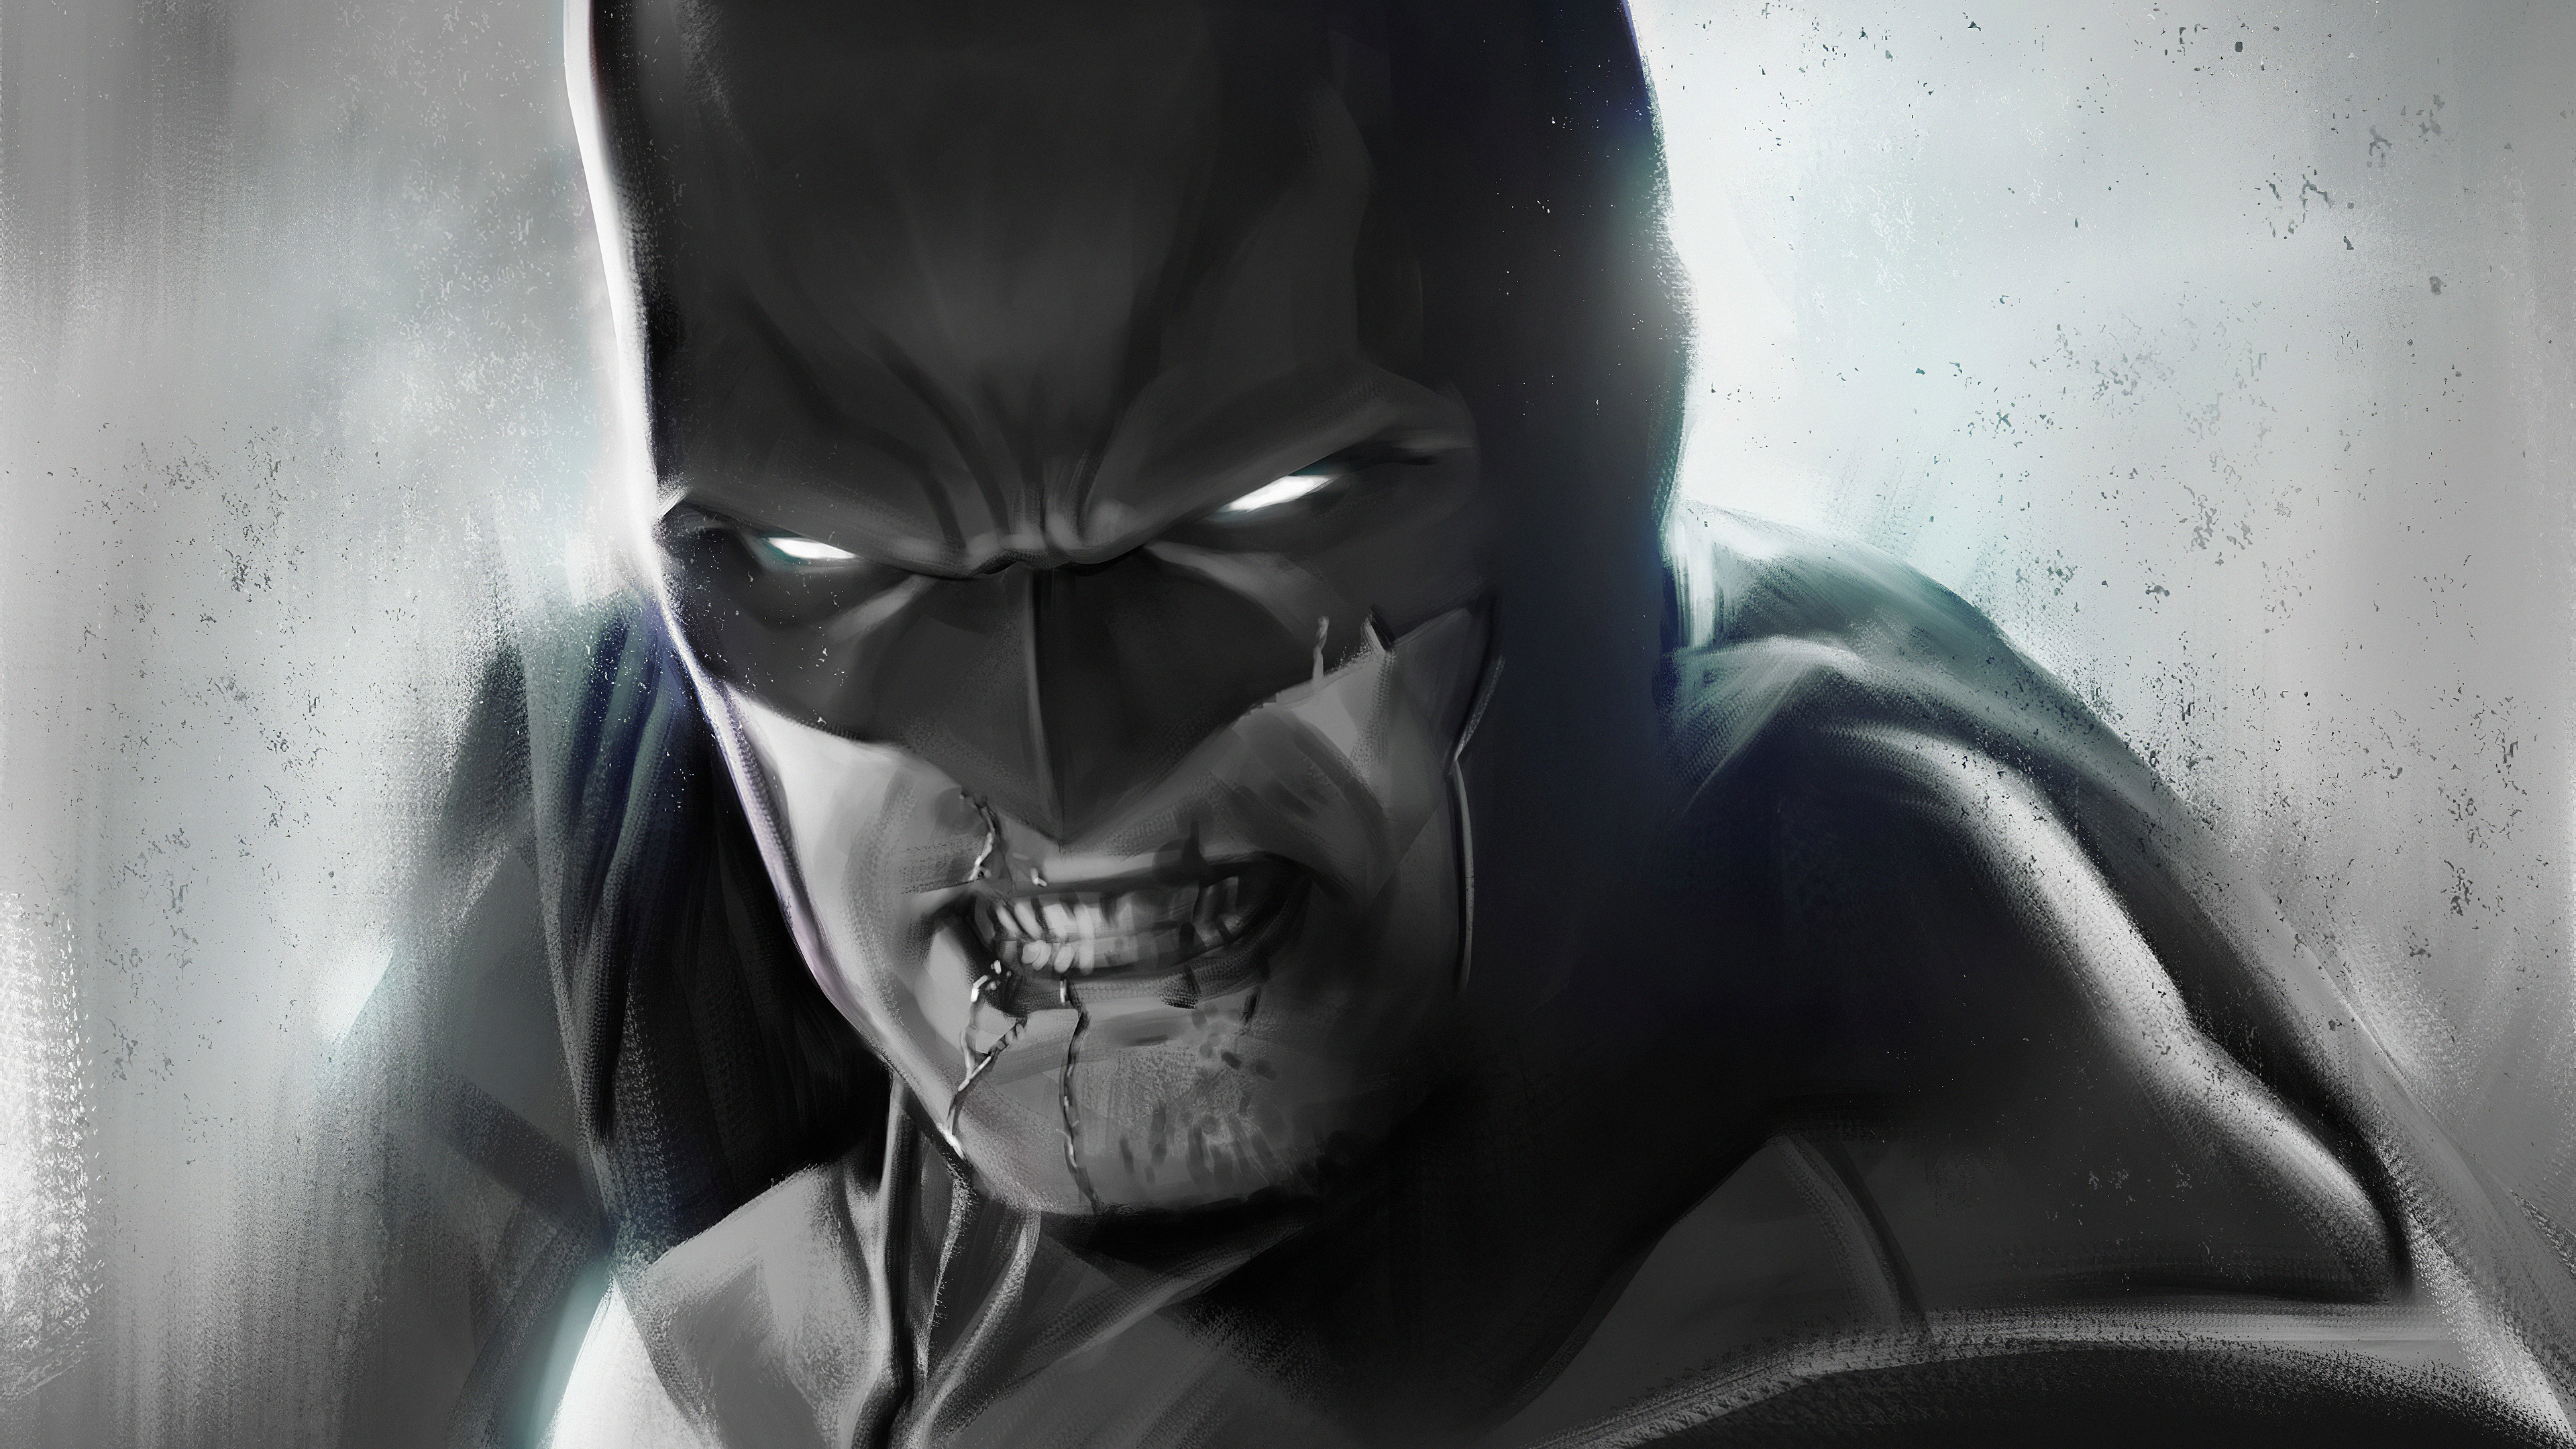 angry batman art 1576091218 - Angry Batman Art - batman angry wallpaper hd 4k, Angry batman wallpaper hd 4k